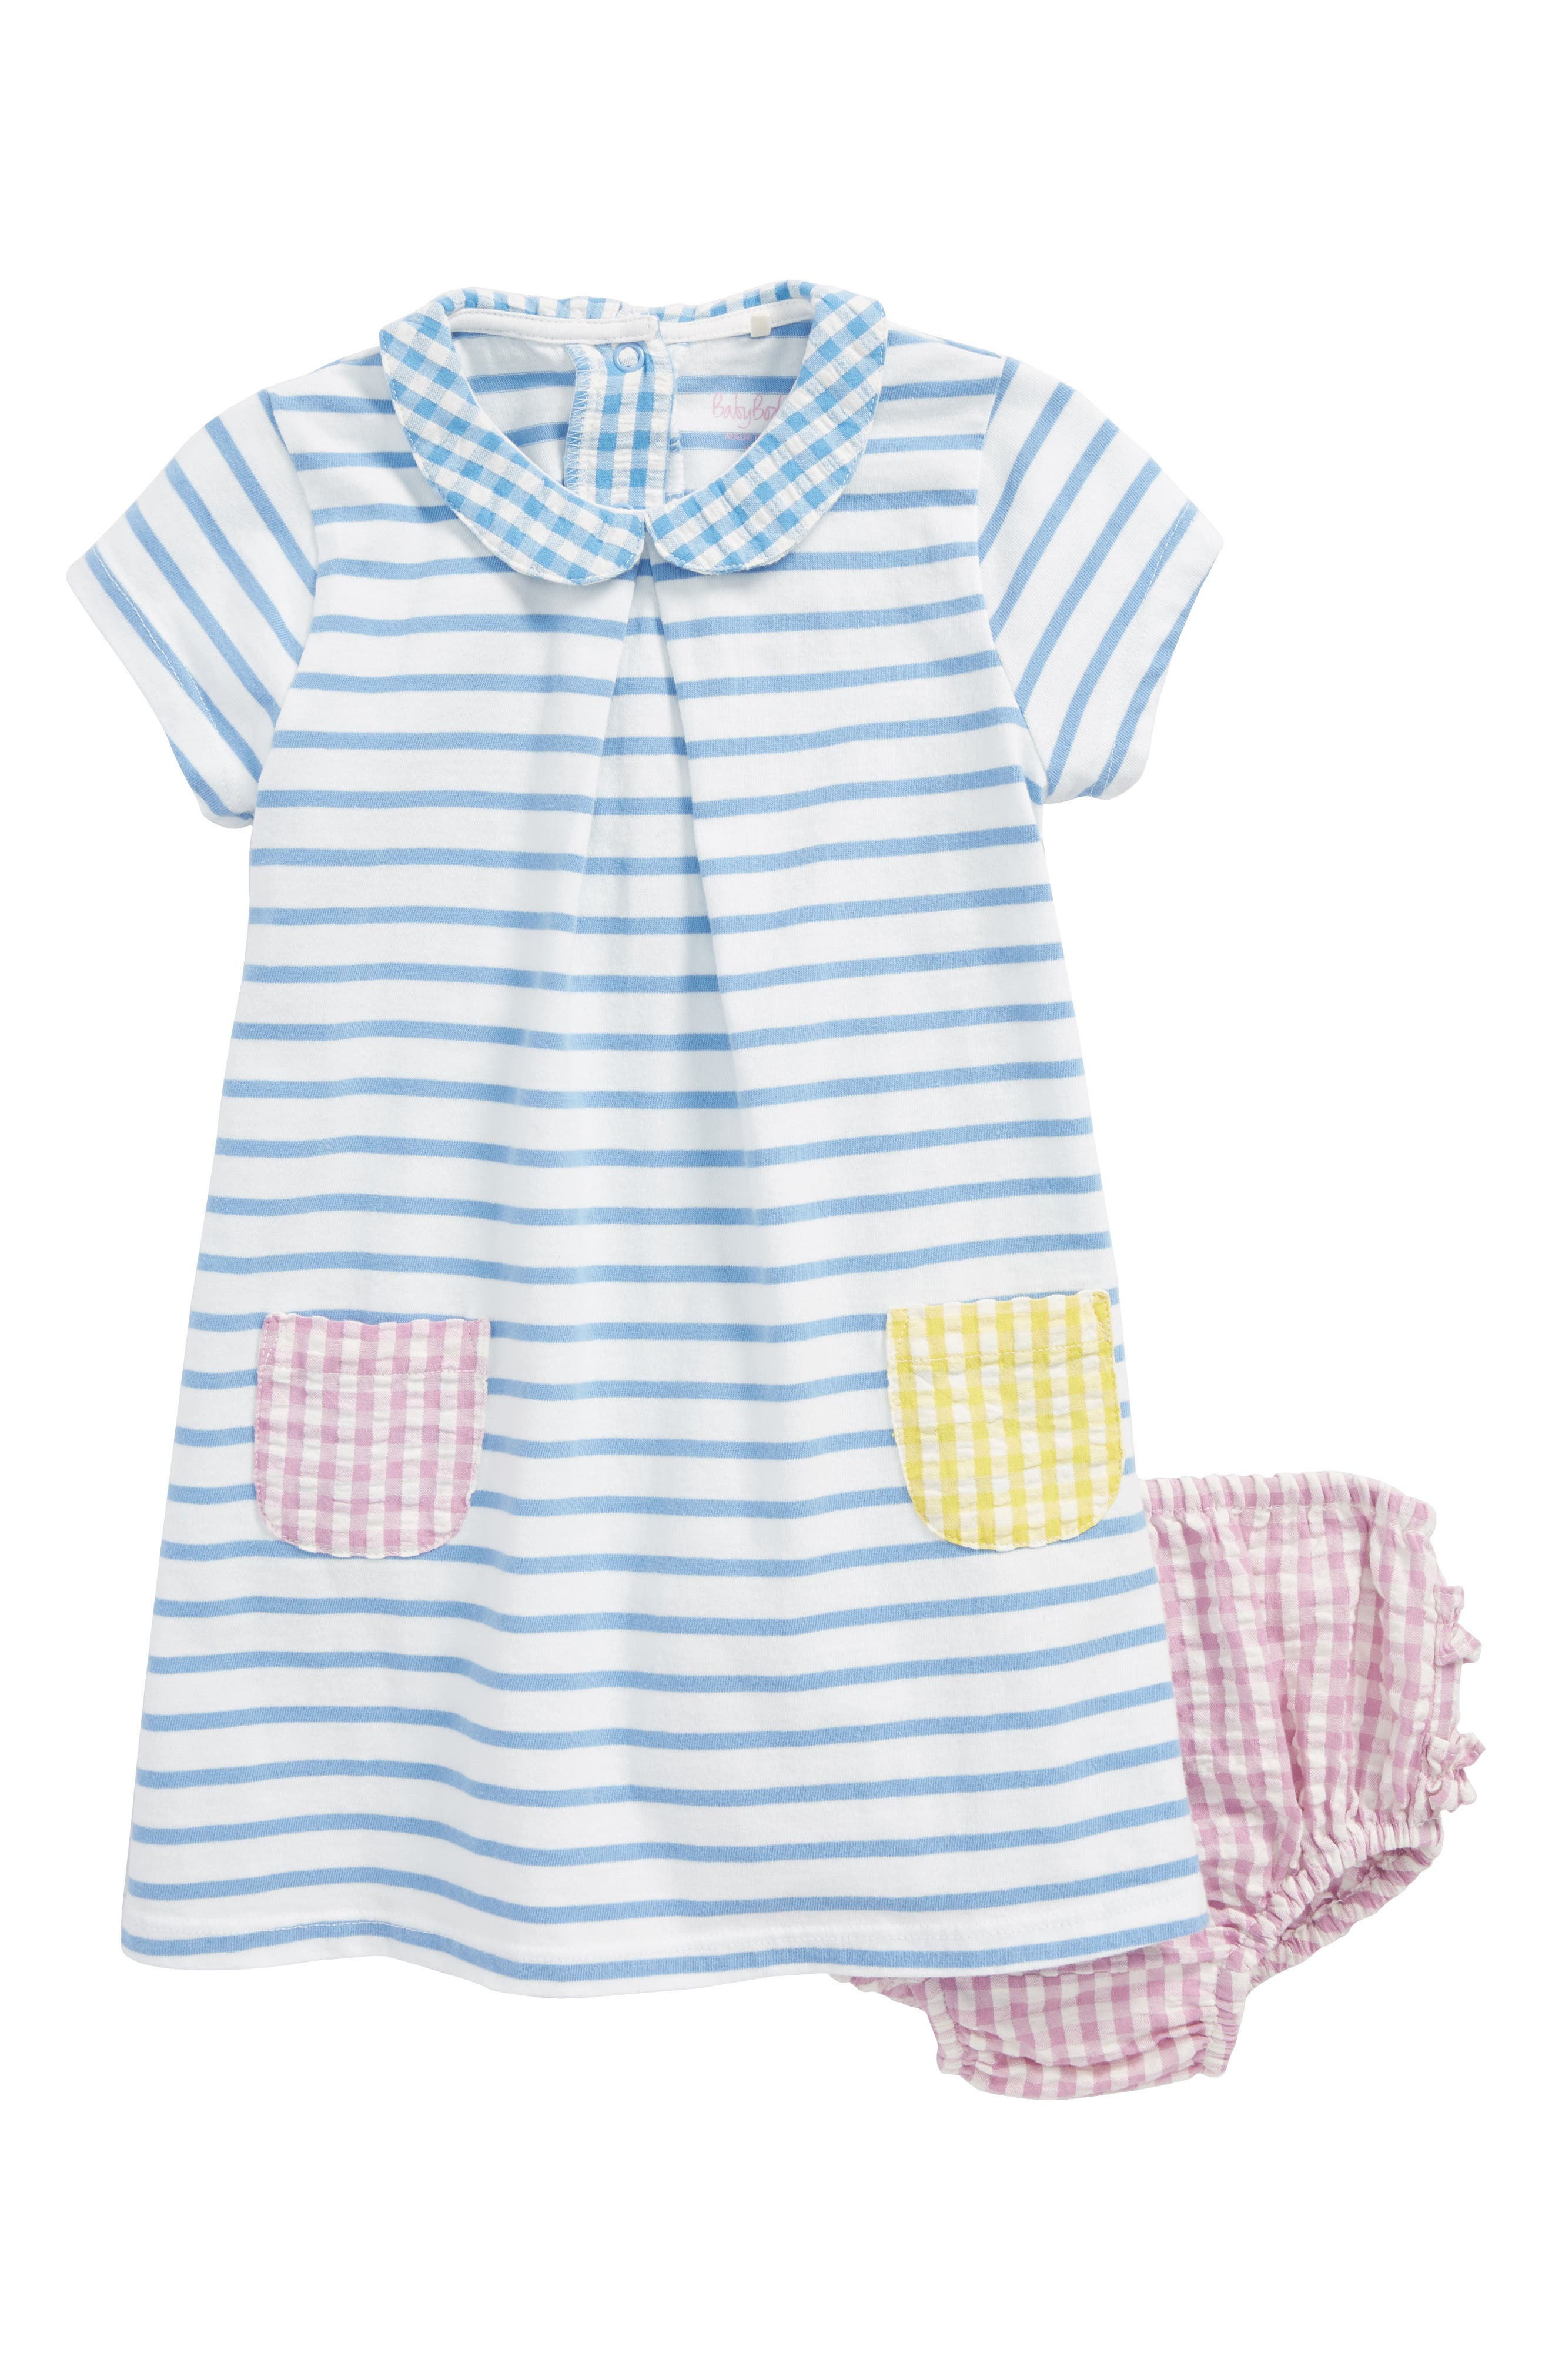 Hotchpotch Dress,                             Main thumbnail 1, color,                             Ivory/ Lake Blue